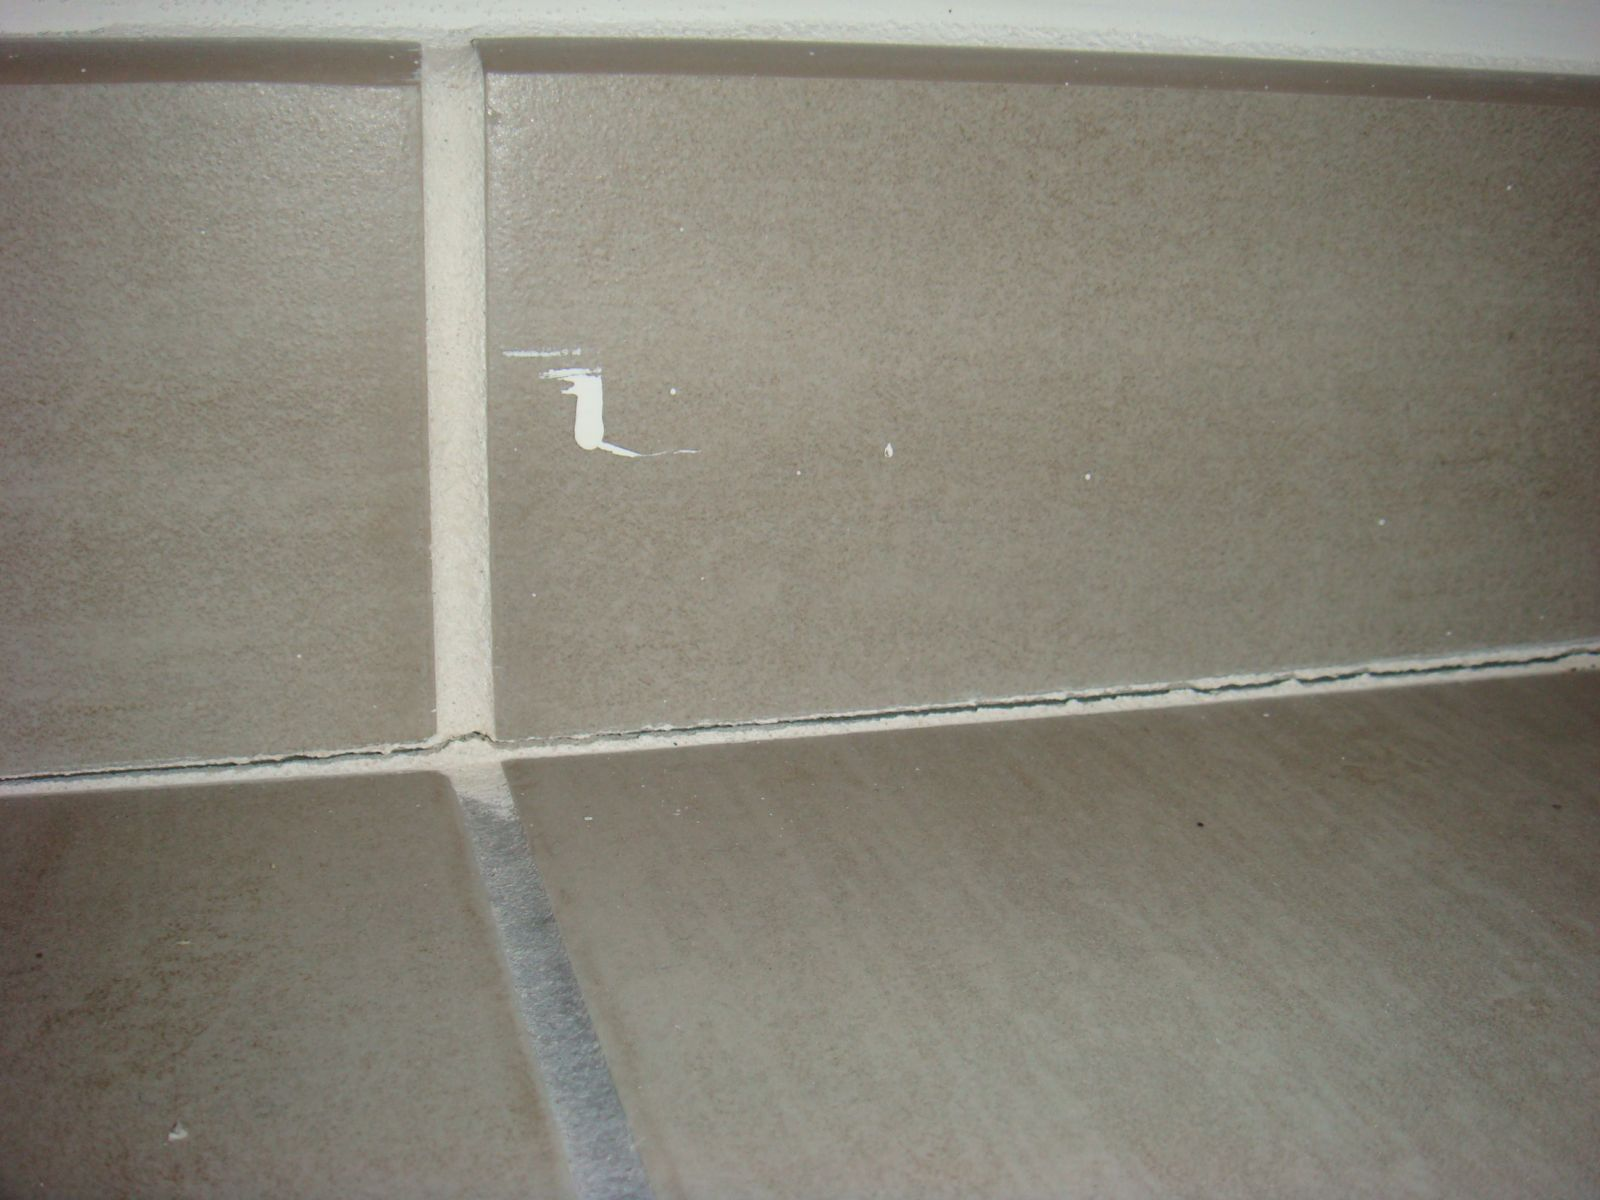 Sujet fissure entre plinthes et carrelage dange for Joint entre carrelage et parquet